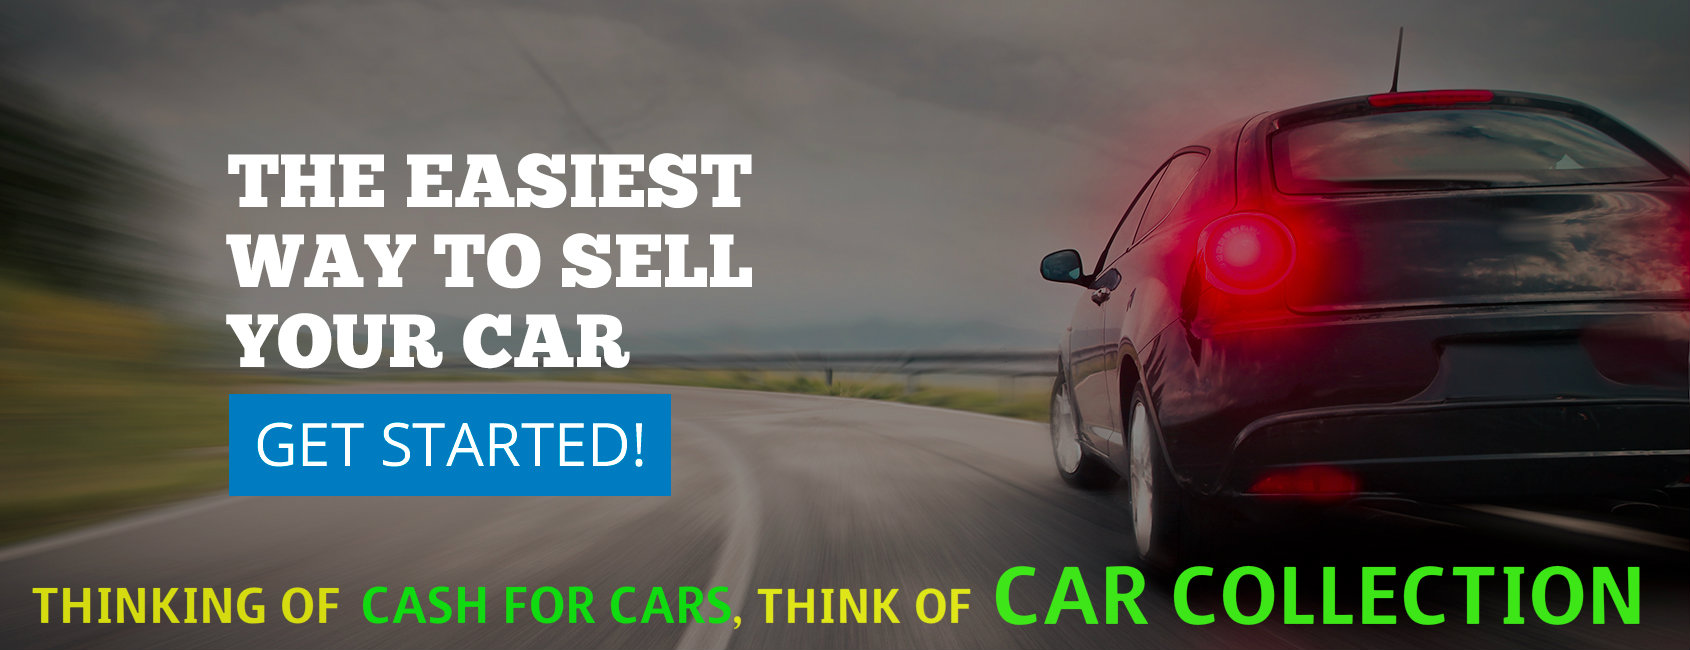 Cash For Cars Online Quote Sell Used Car  Car Wreckers  Cash For Cars  Car Removal